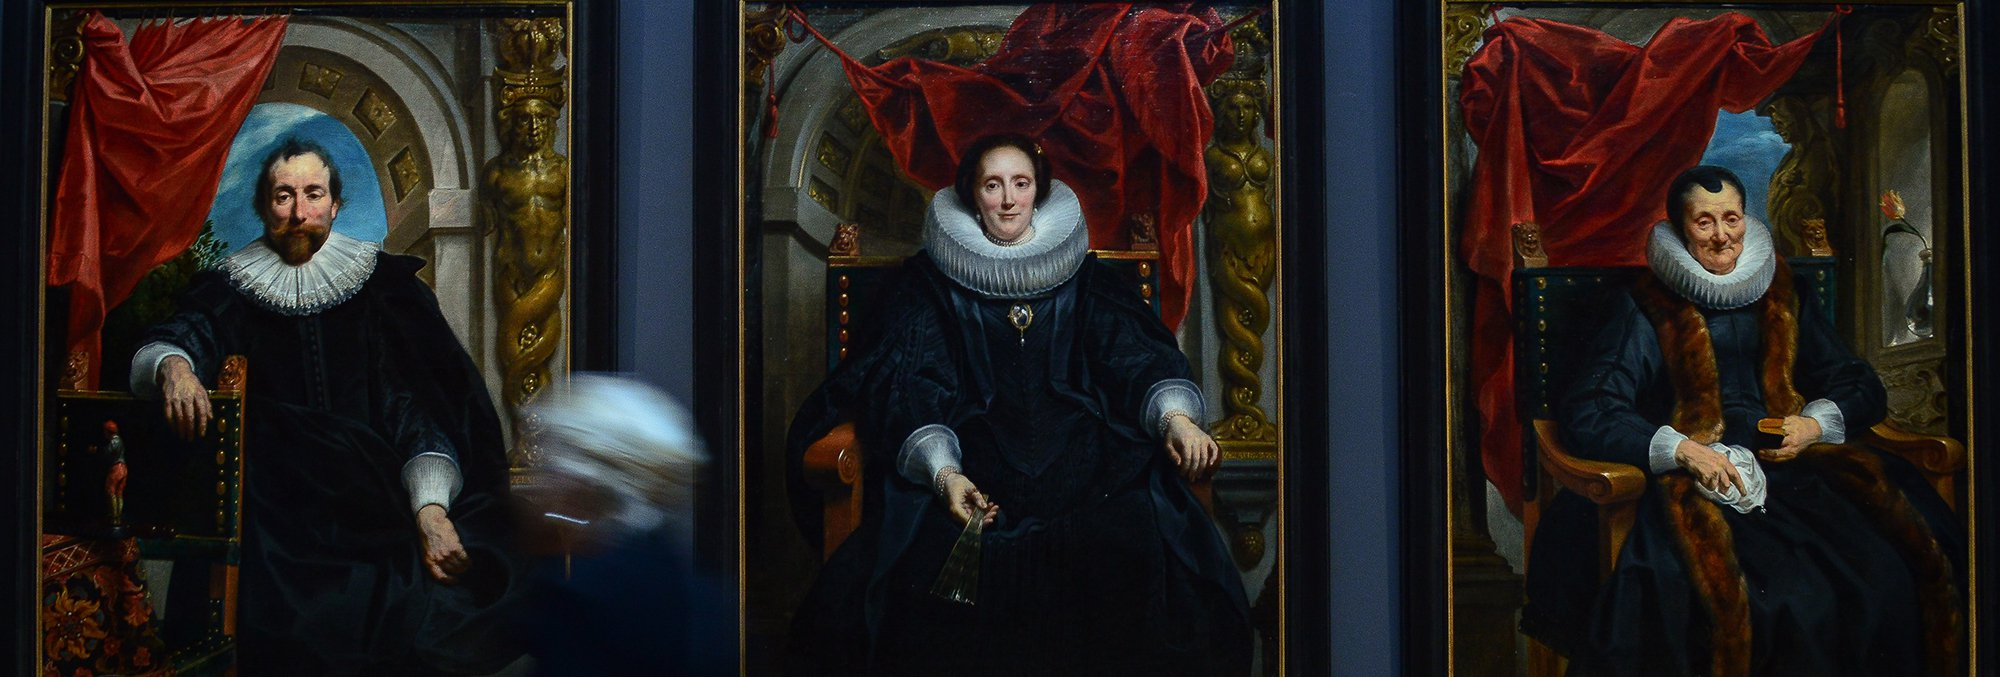 three portrait painting from museum in the Netherlands